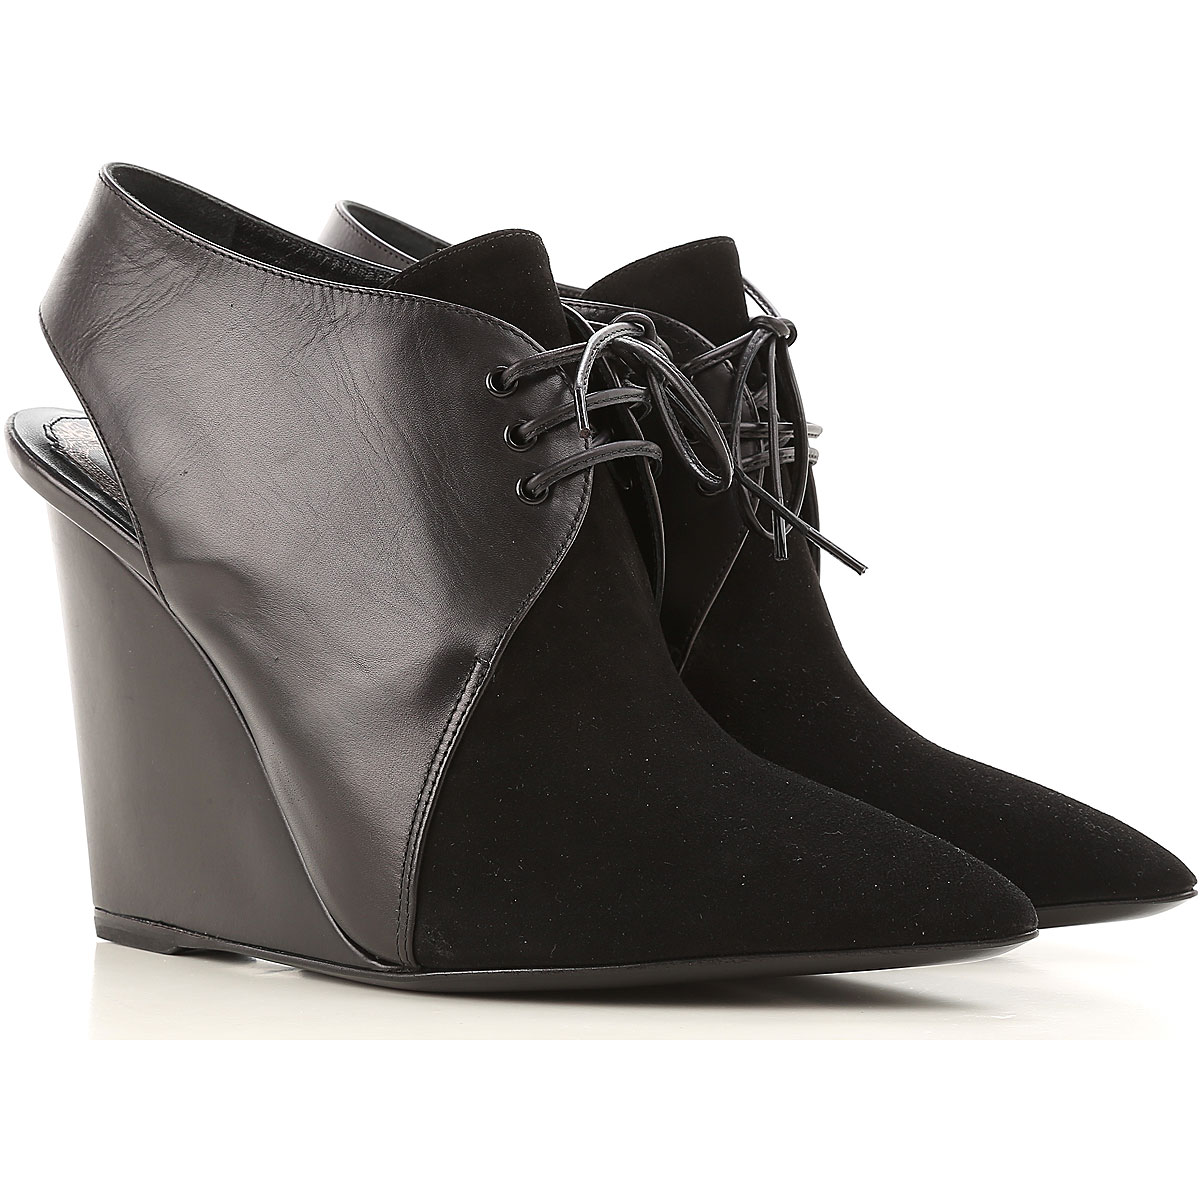 Christian Dior Wedges for Women On Sale in Outlet Black SE - GOOFASH